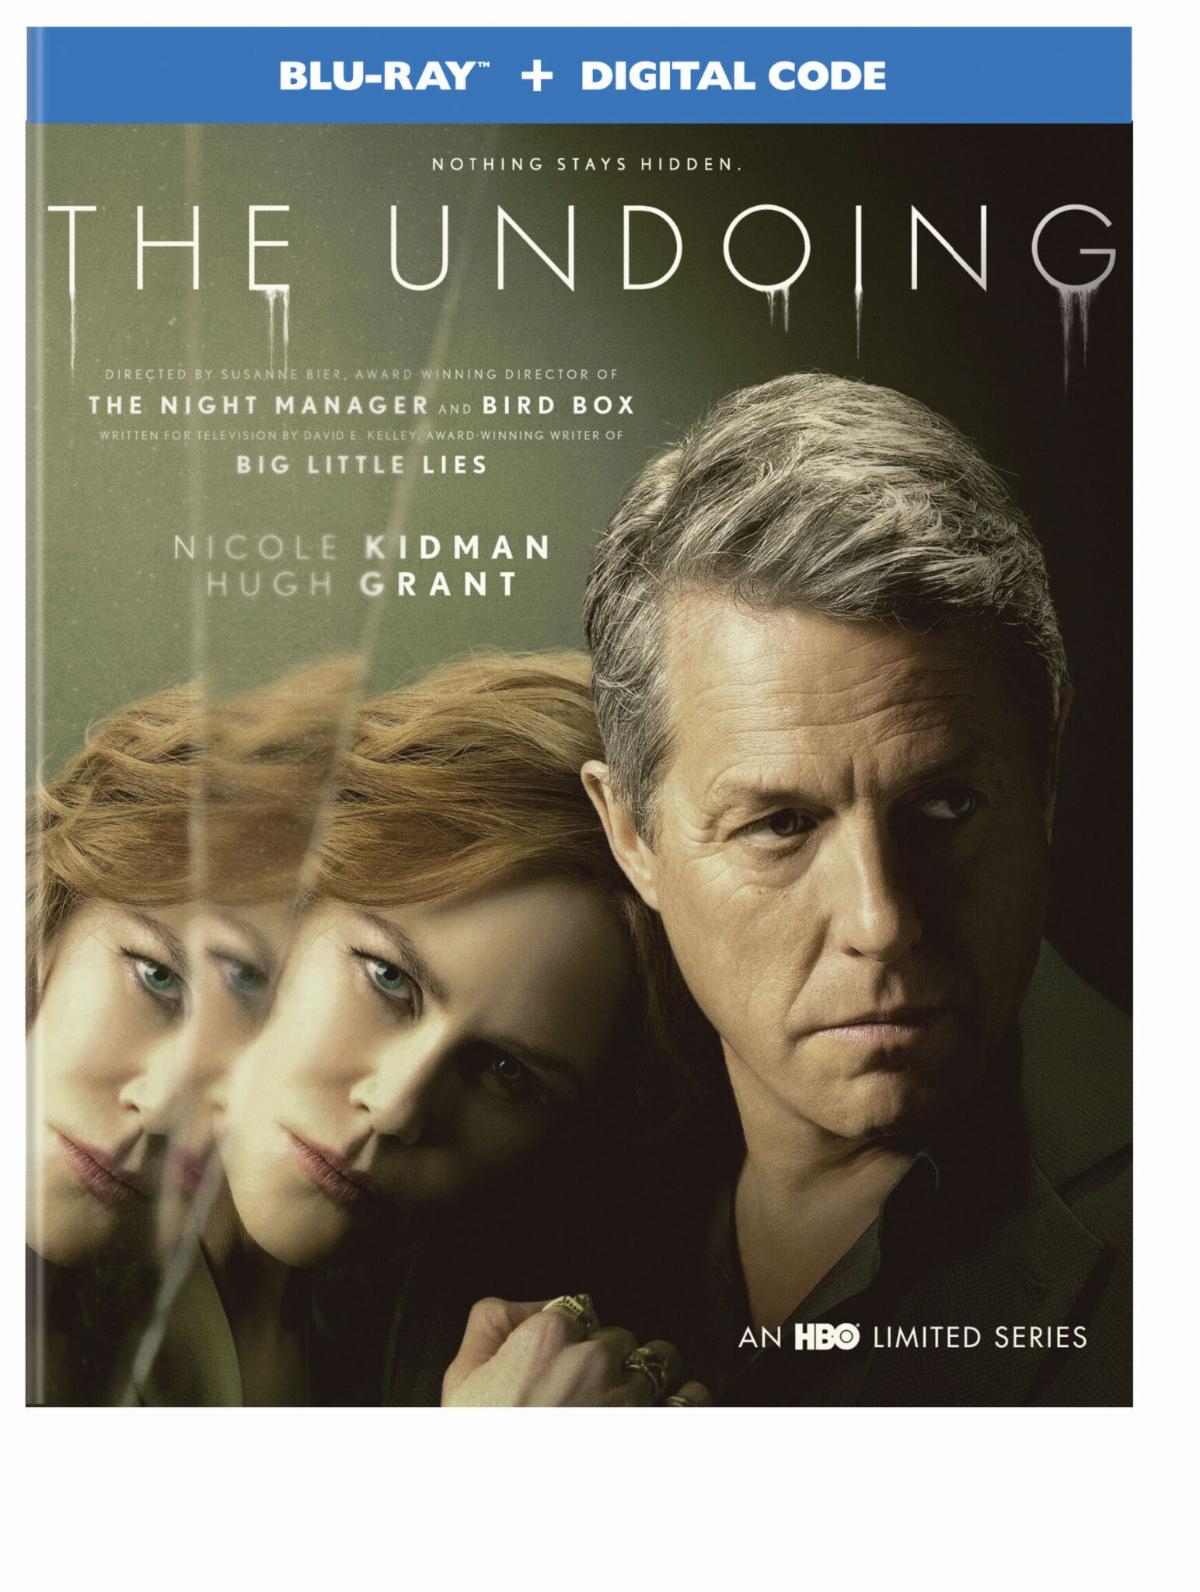 The Undoing Blu-ray Review